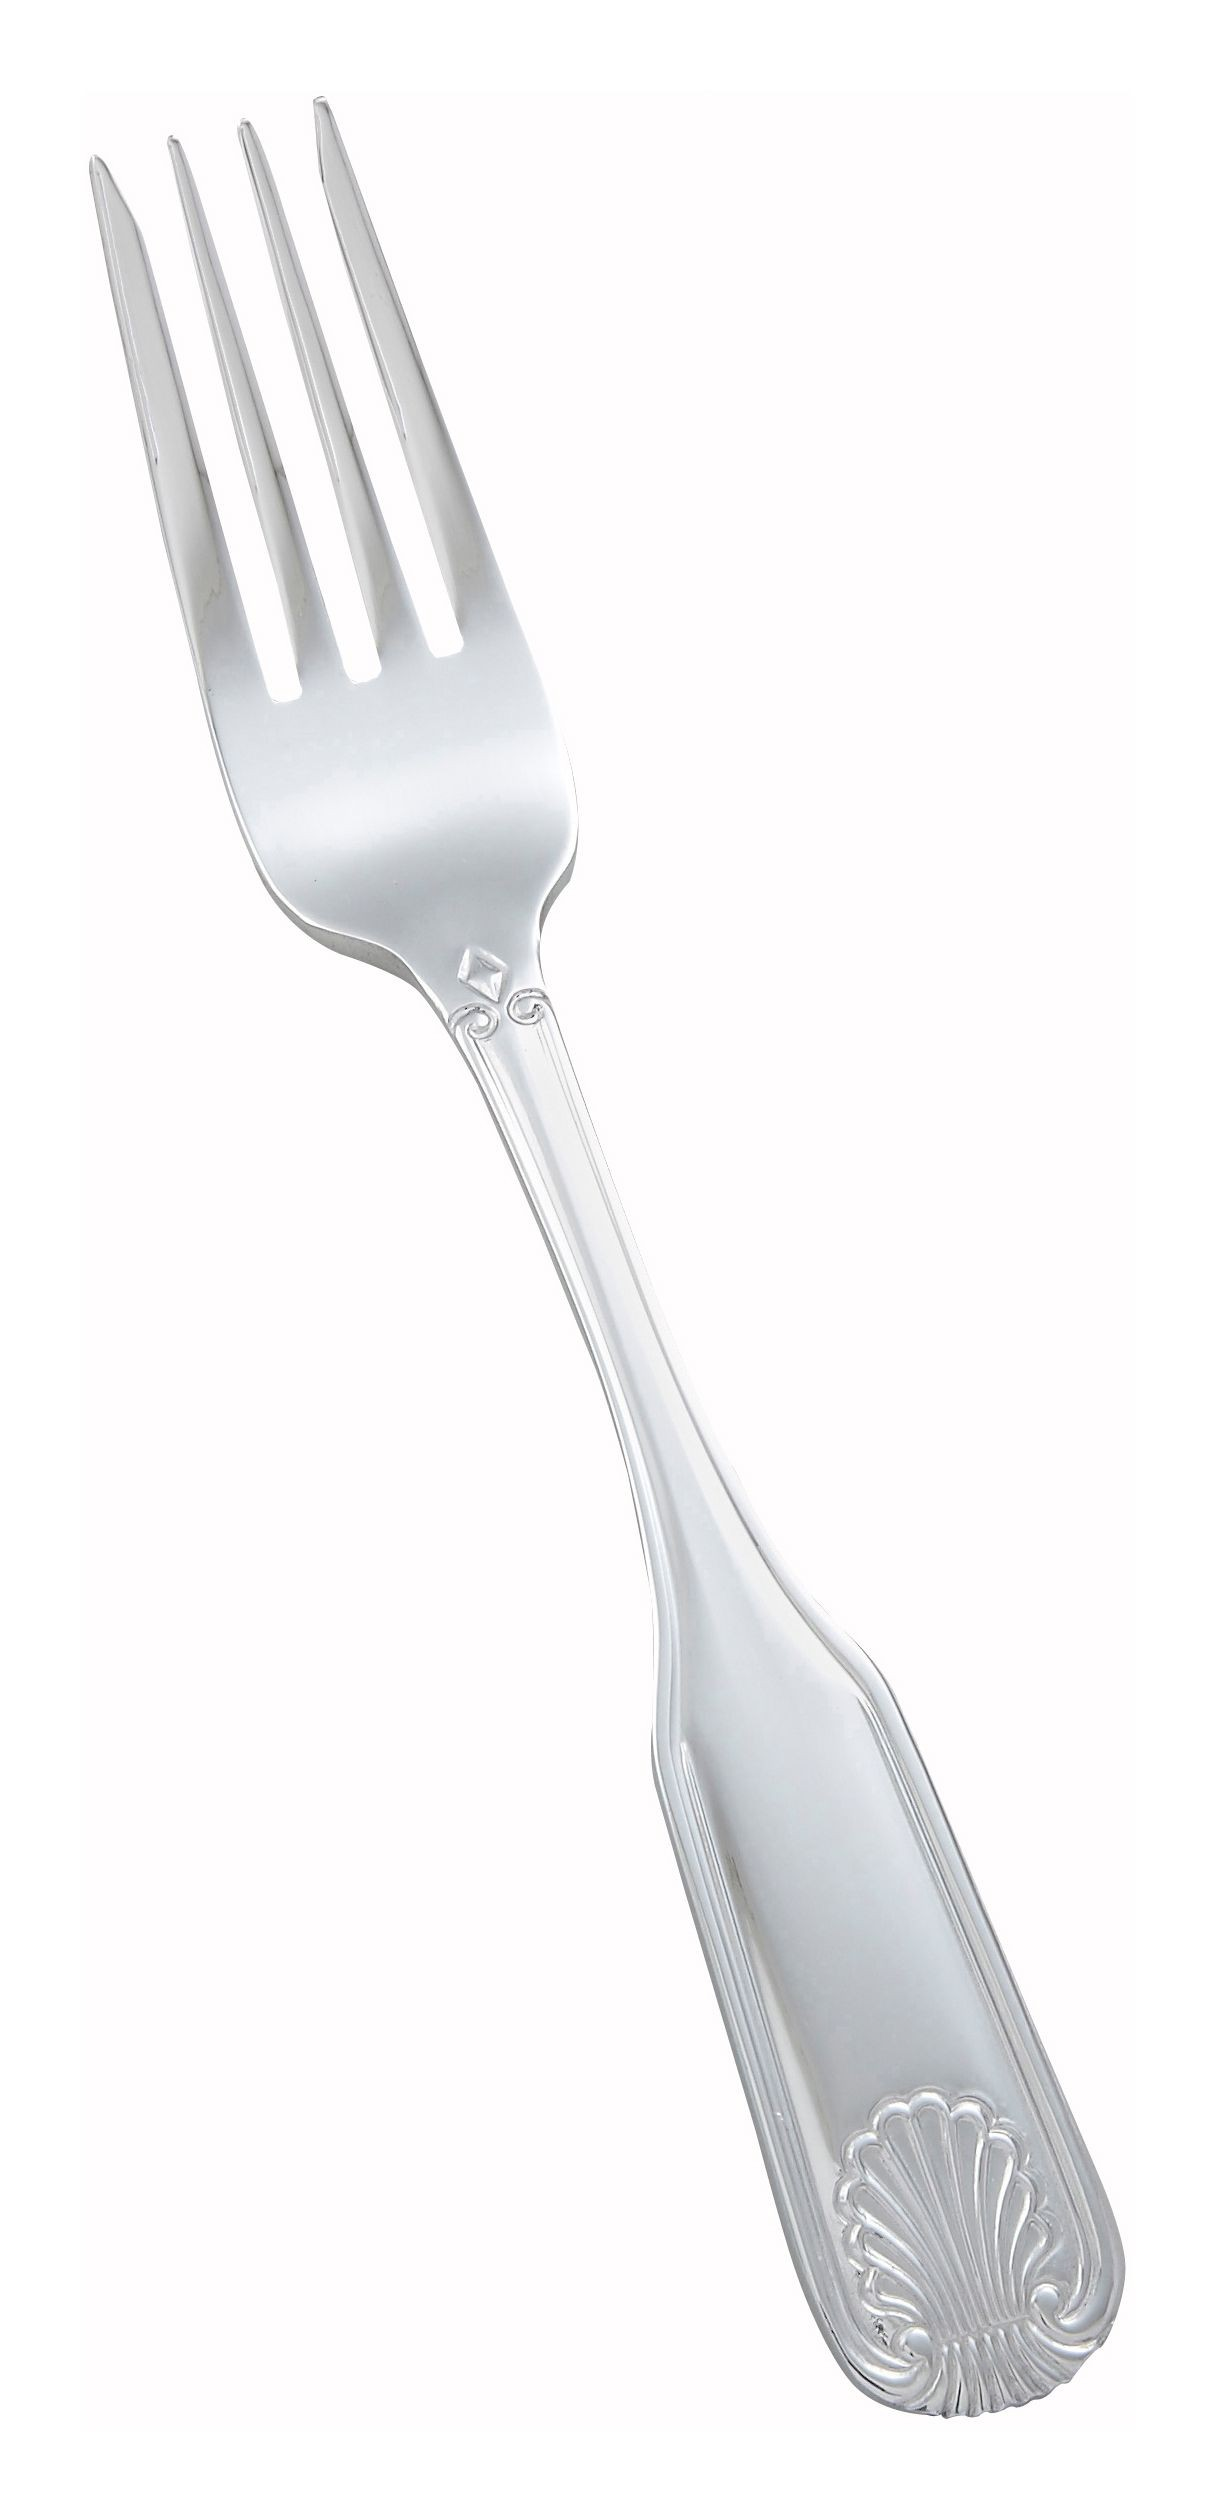 Winco 0006-06 Toulouse Heavy Mirror Finish Stainless Steel Salad Fork (12/Pack)